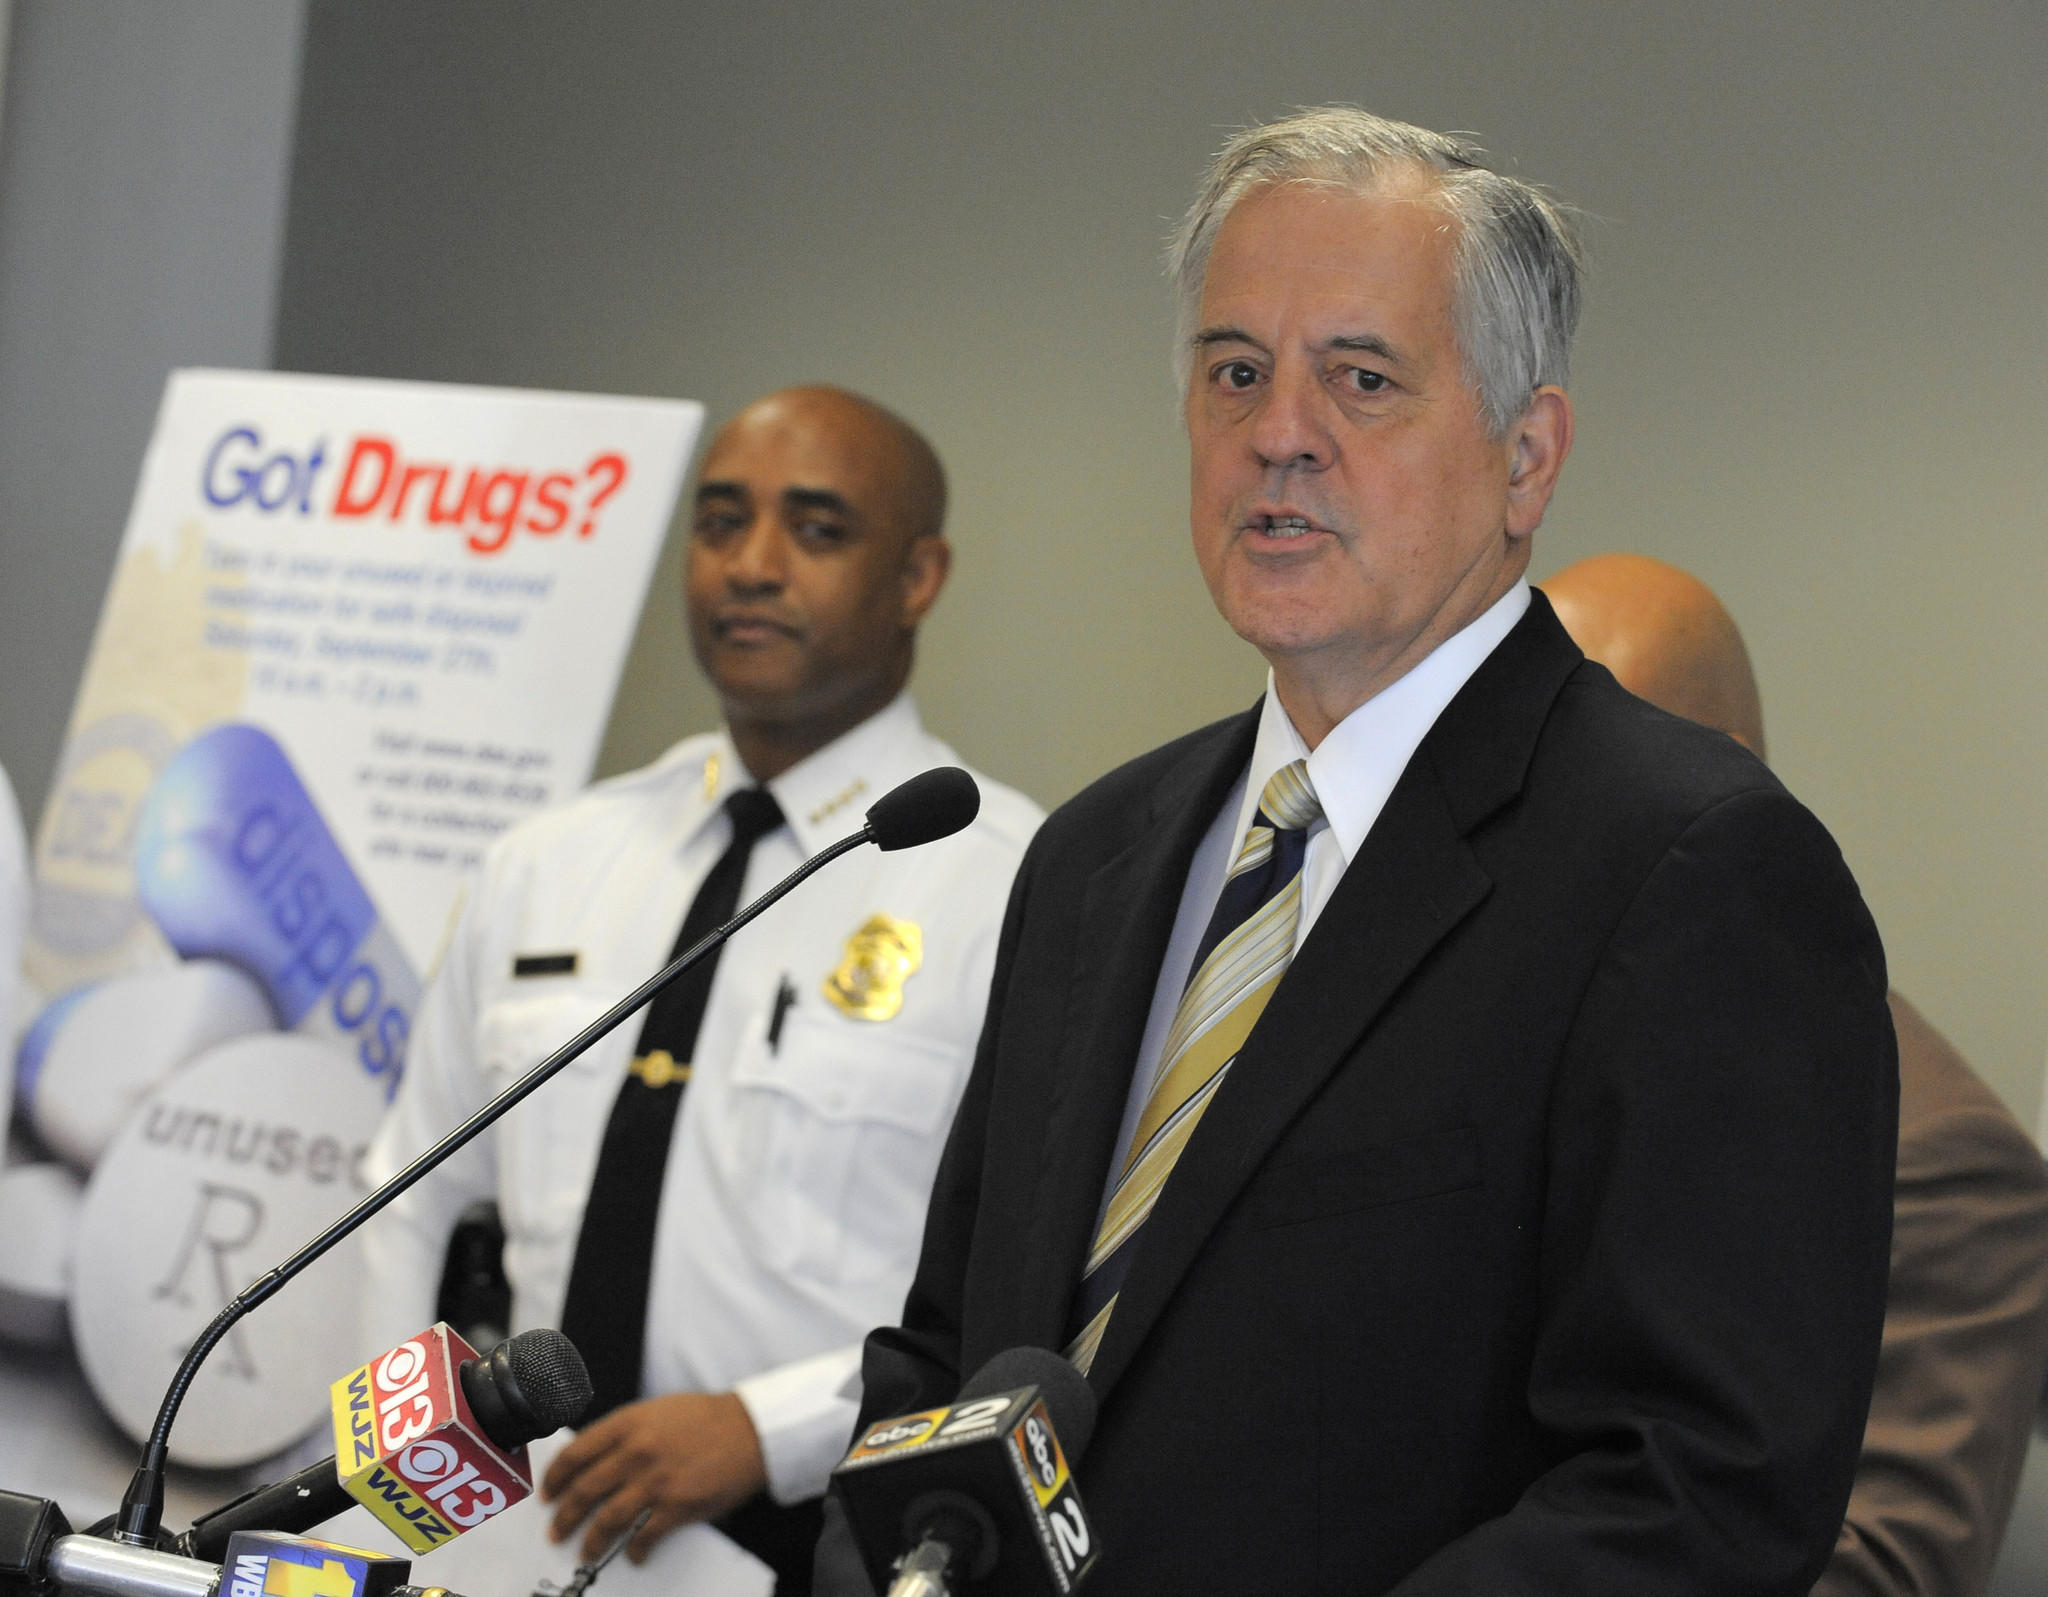 Baltimore,MD--9/24/14--Bernard J. McBride the CEO and President of Behavioral Health System Baltimore speaks about the Drug Take-Back program. Baltimore Police Commissioner Anthony Batts (L). Federal and local law enforcement officials, elected officials and public health officials speak to the media about National Prescription Drug Take-Back Day, which takes place Sept. 27, 2014. This effort seeks to educate the public to safely dispose of their unneeded prescription drugs to reduce the chance that others will steal or abuse them. Lloyd Fox/Sun Photographer #3531